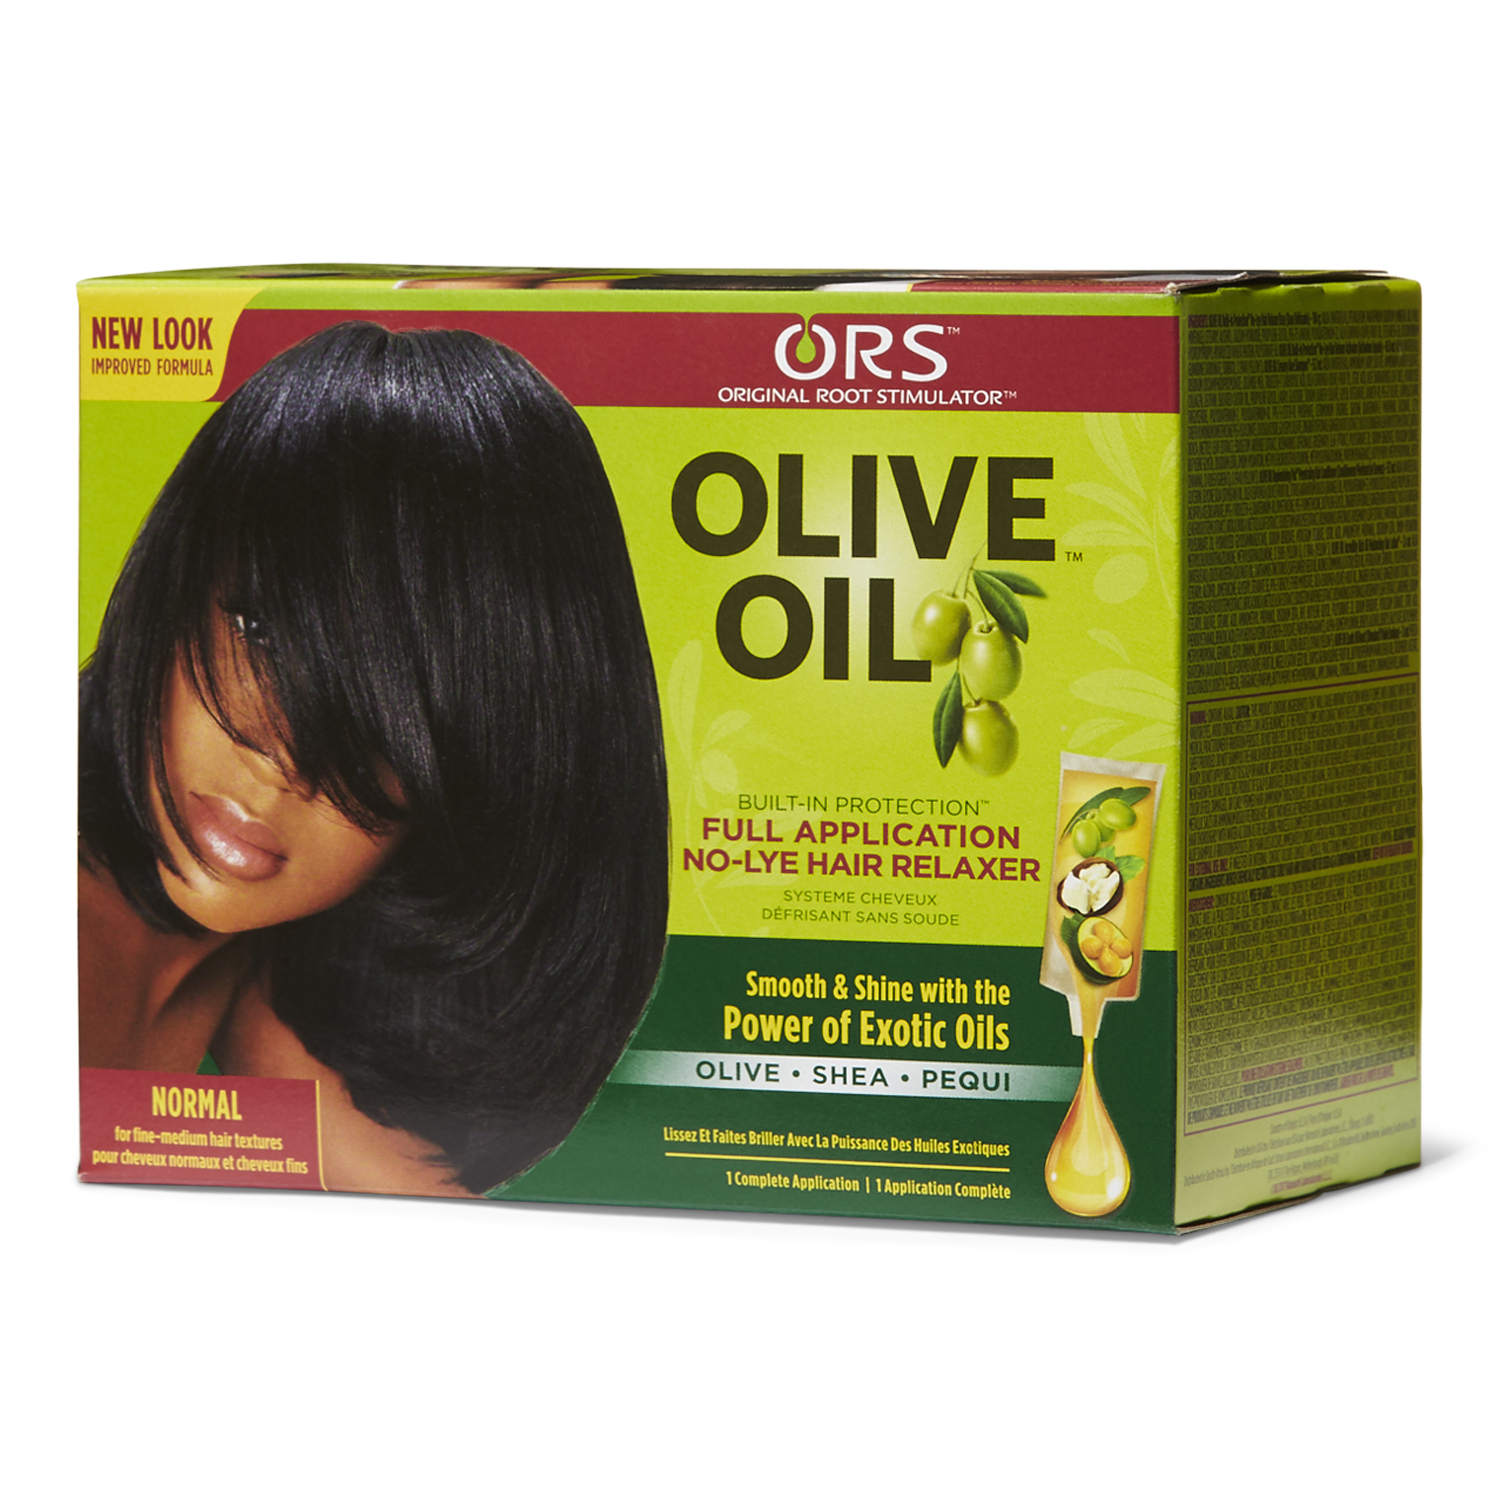 organic root stimulator normal olive oil built in protection no lye